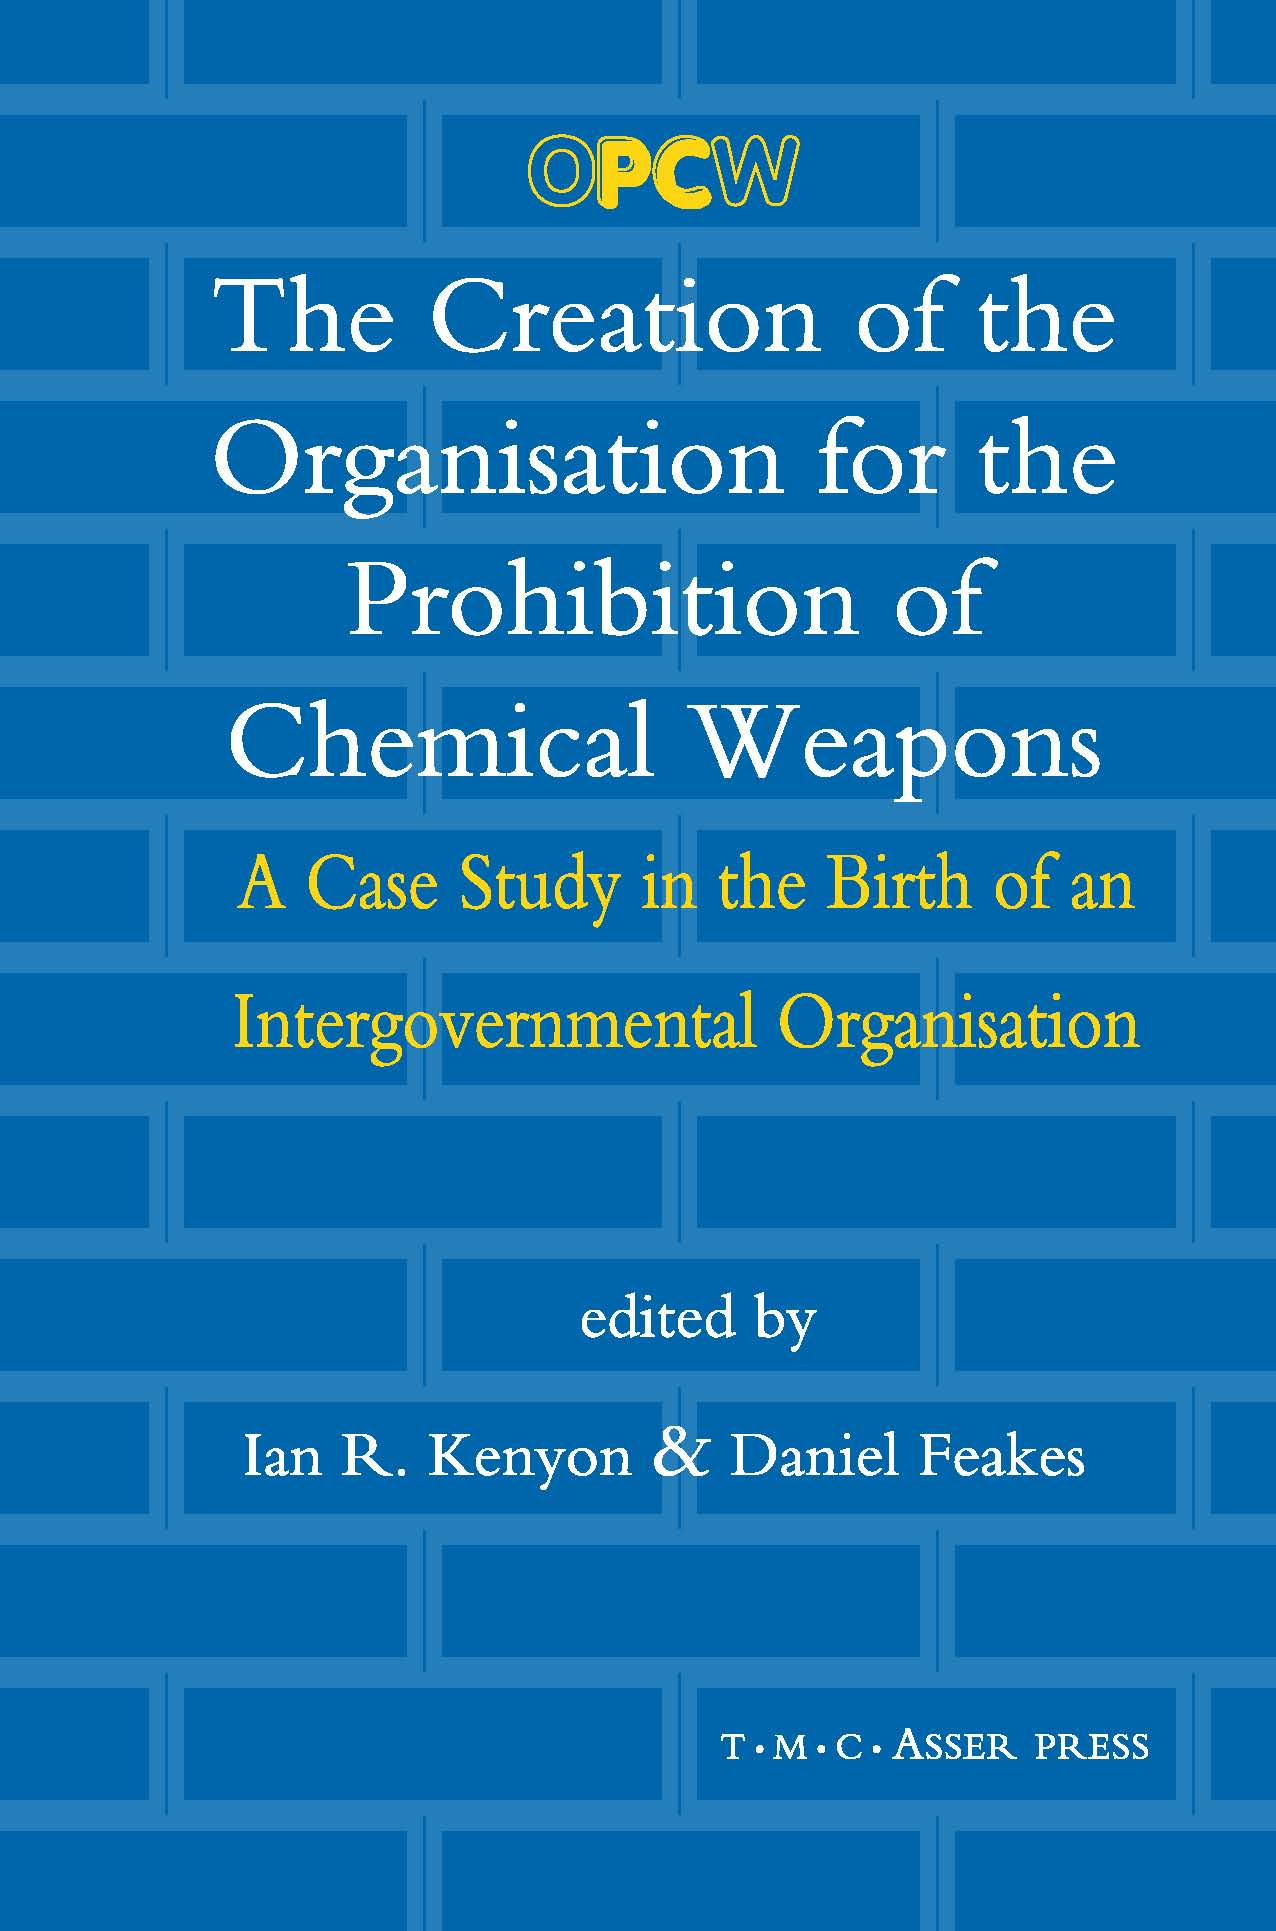 The Creation of the Organisation for the Prohibition of Chemical Weapons - A Case Study in the Birth of an Intergovernmental Organisation